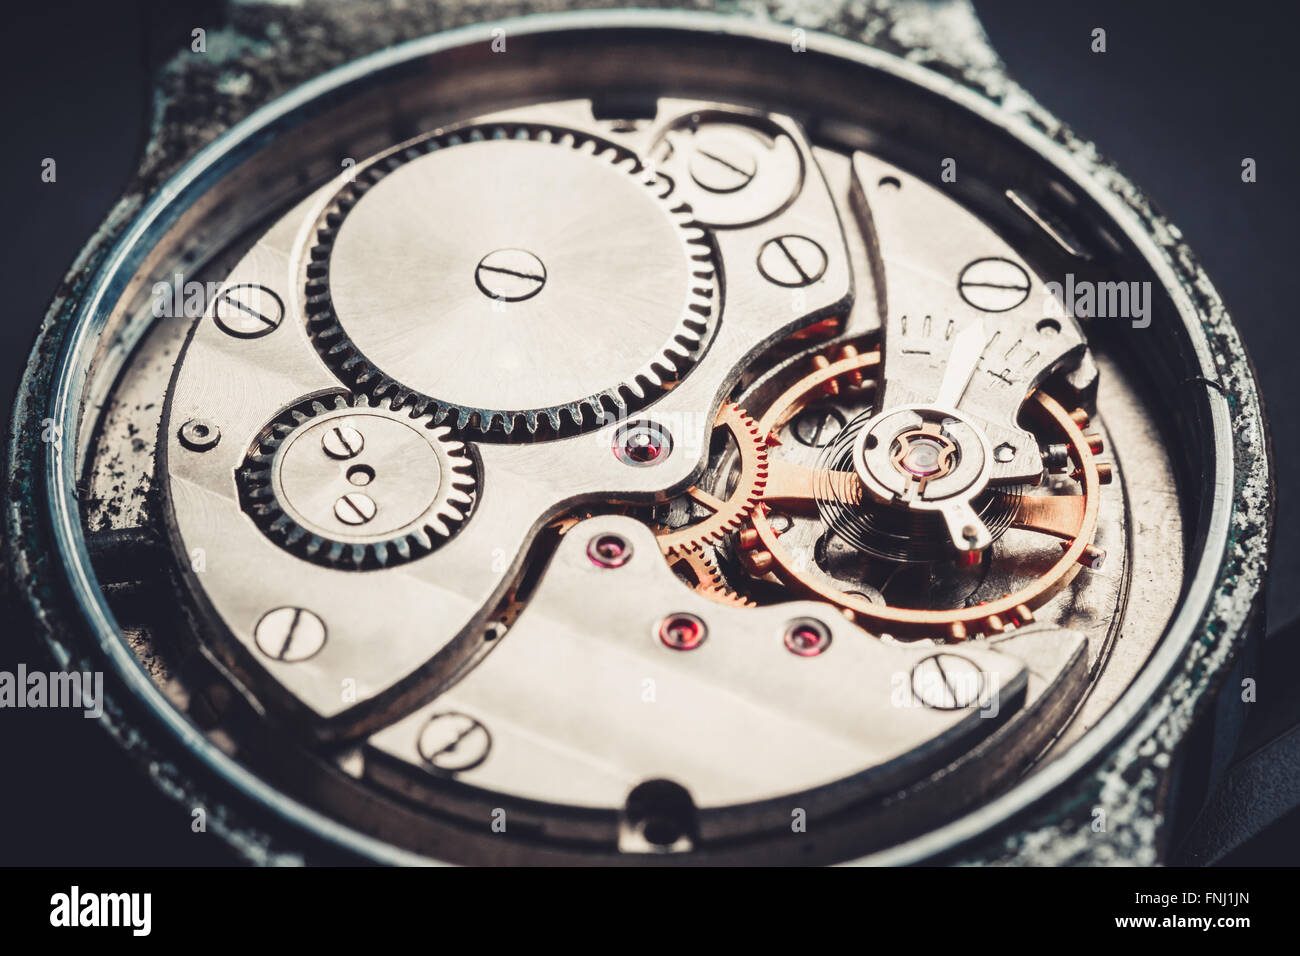 mechanism antique vintage wrist watch beautiful original black and metallic background - Stock Image